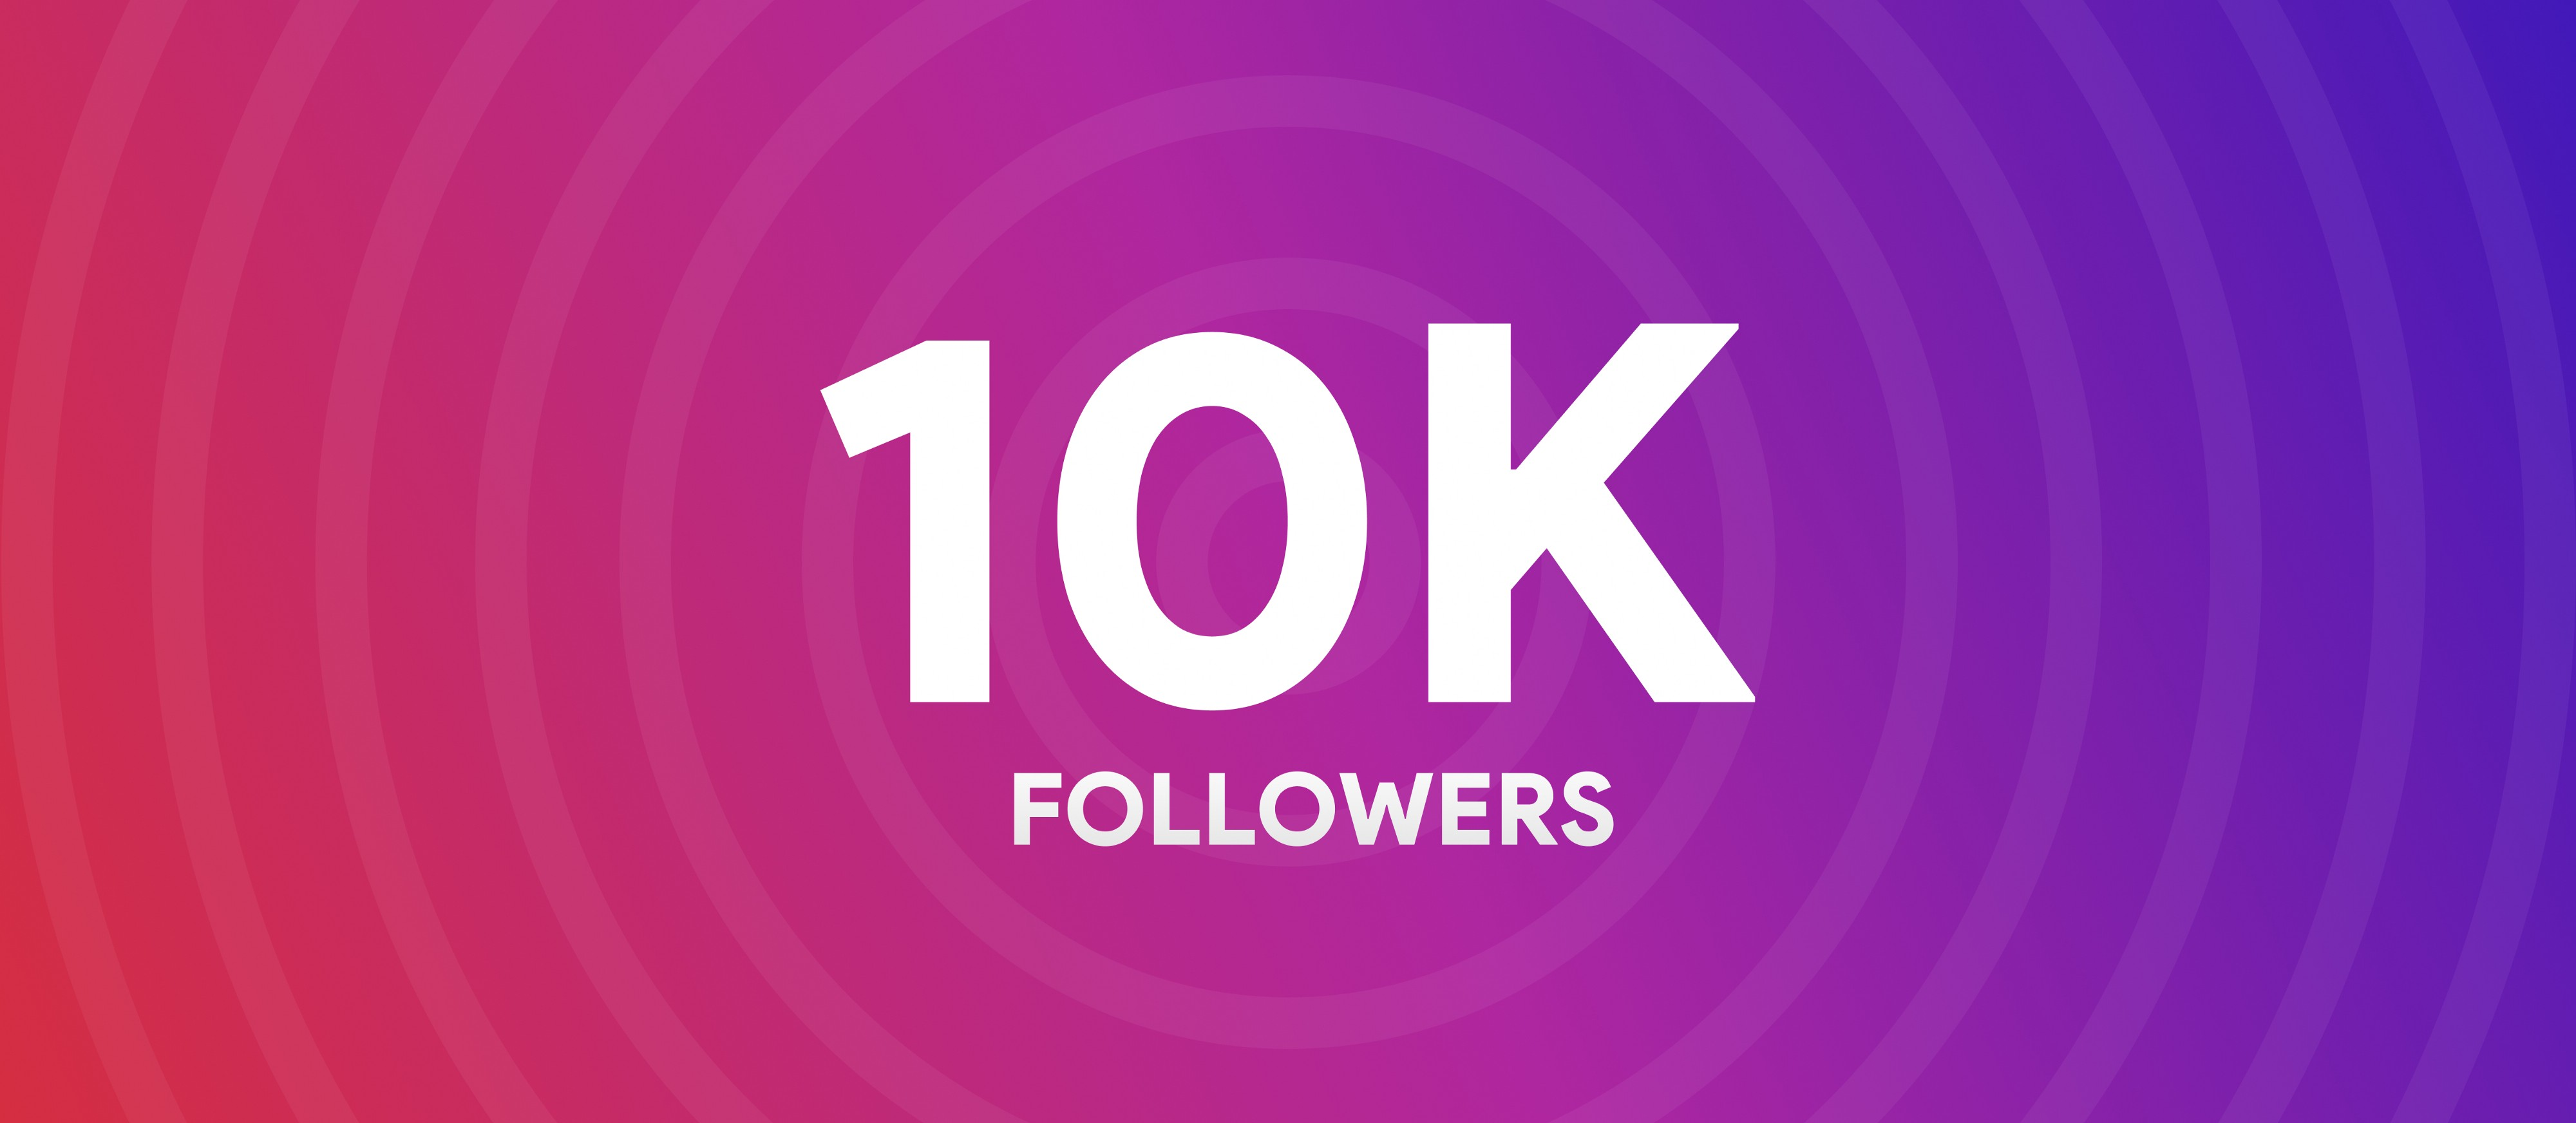 Secret Formula to get 10k followers on Instagram in one month as a